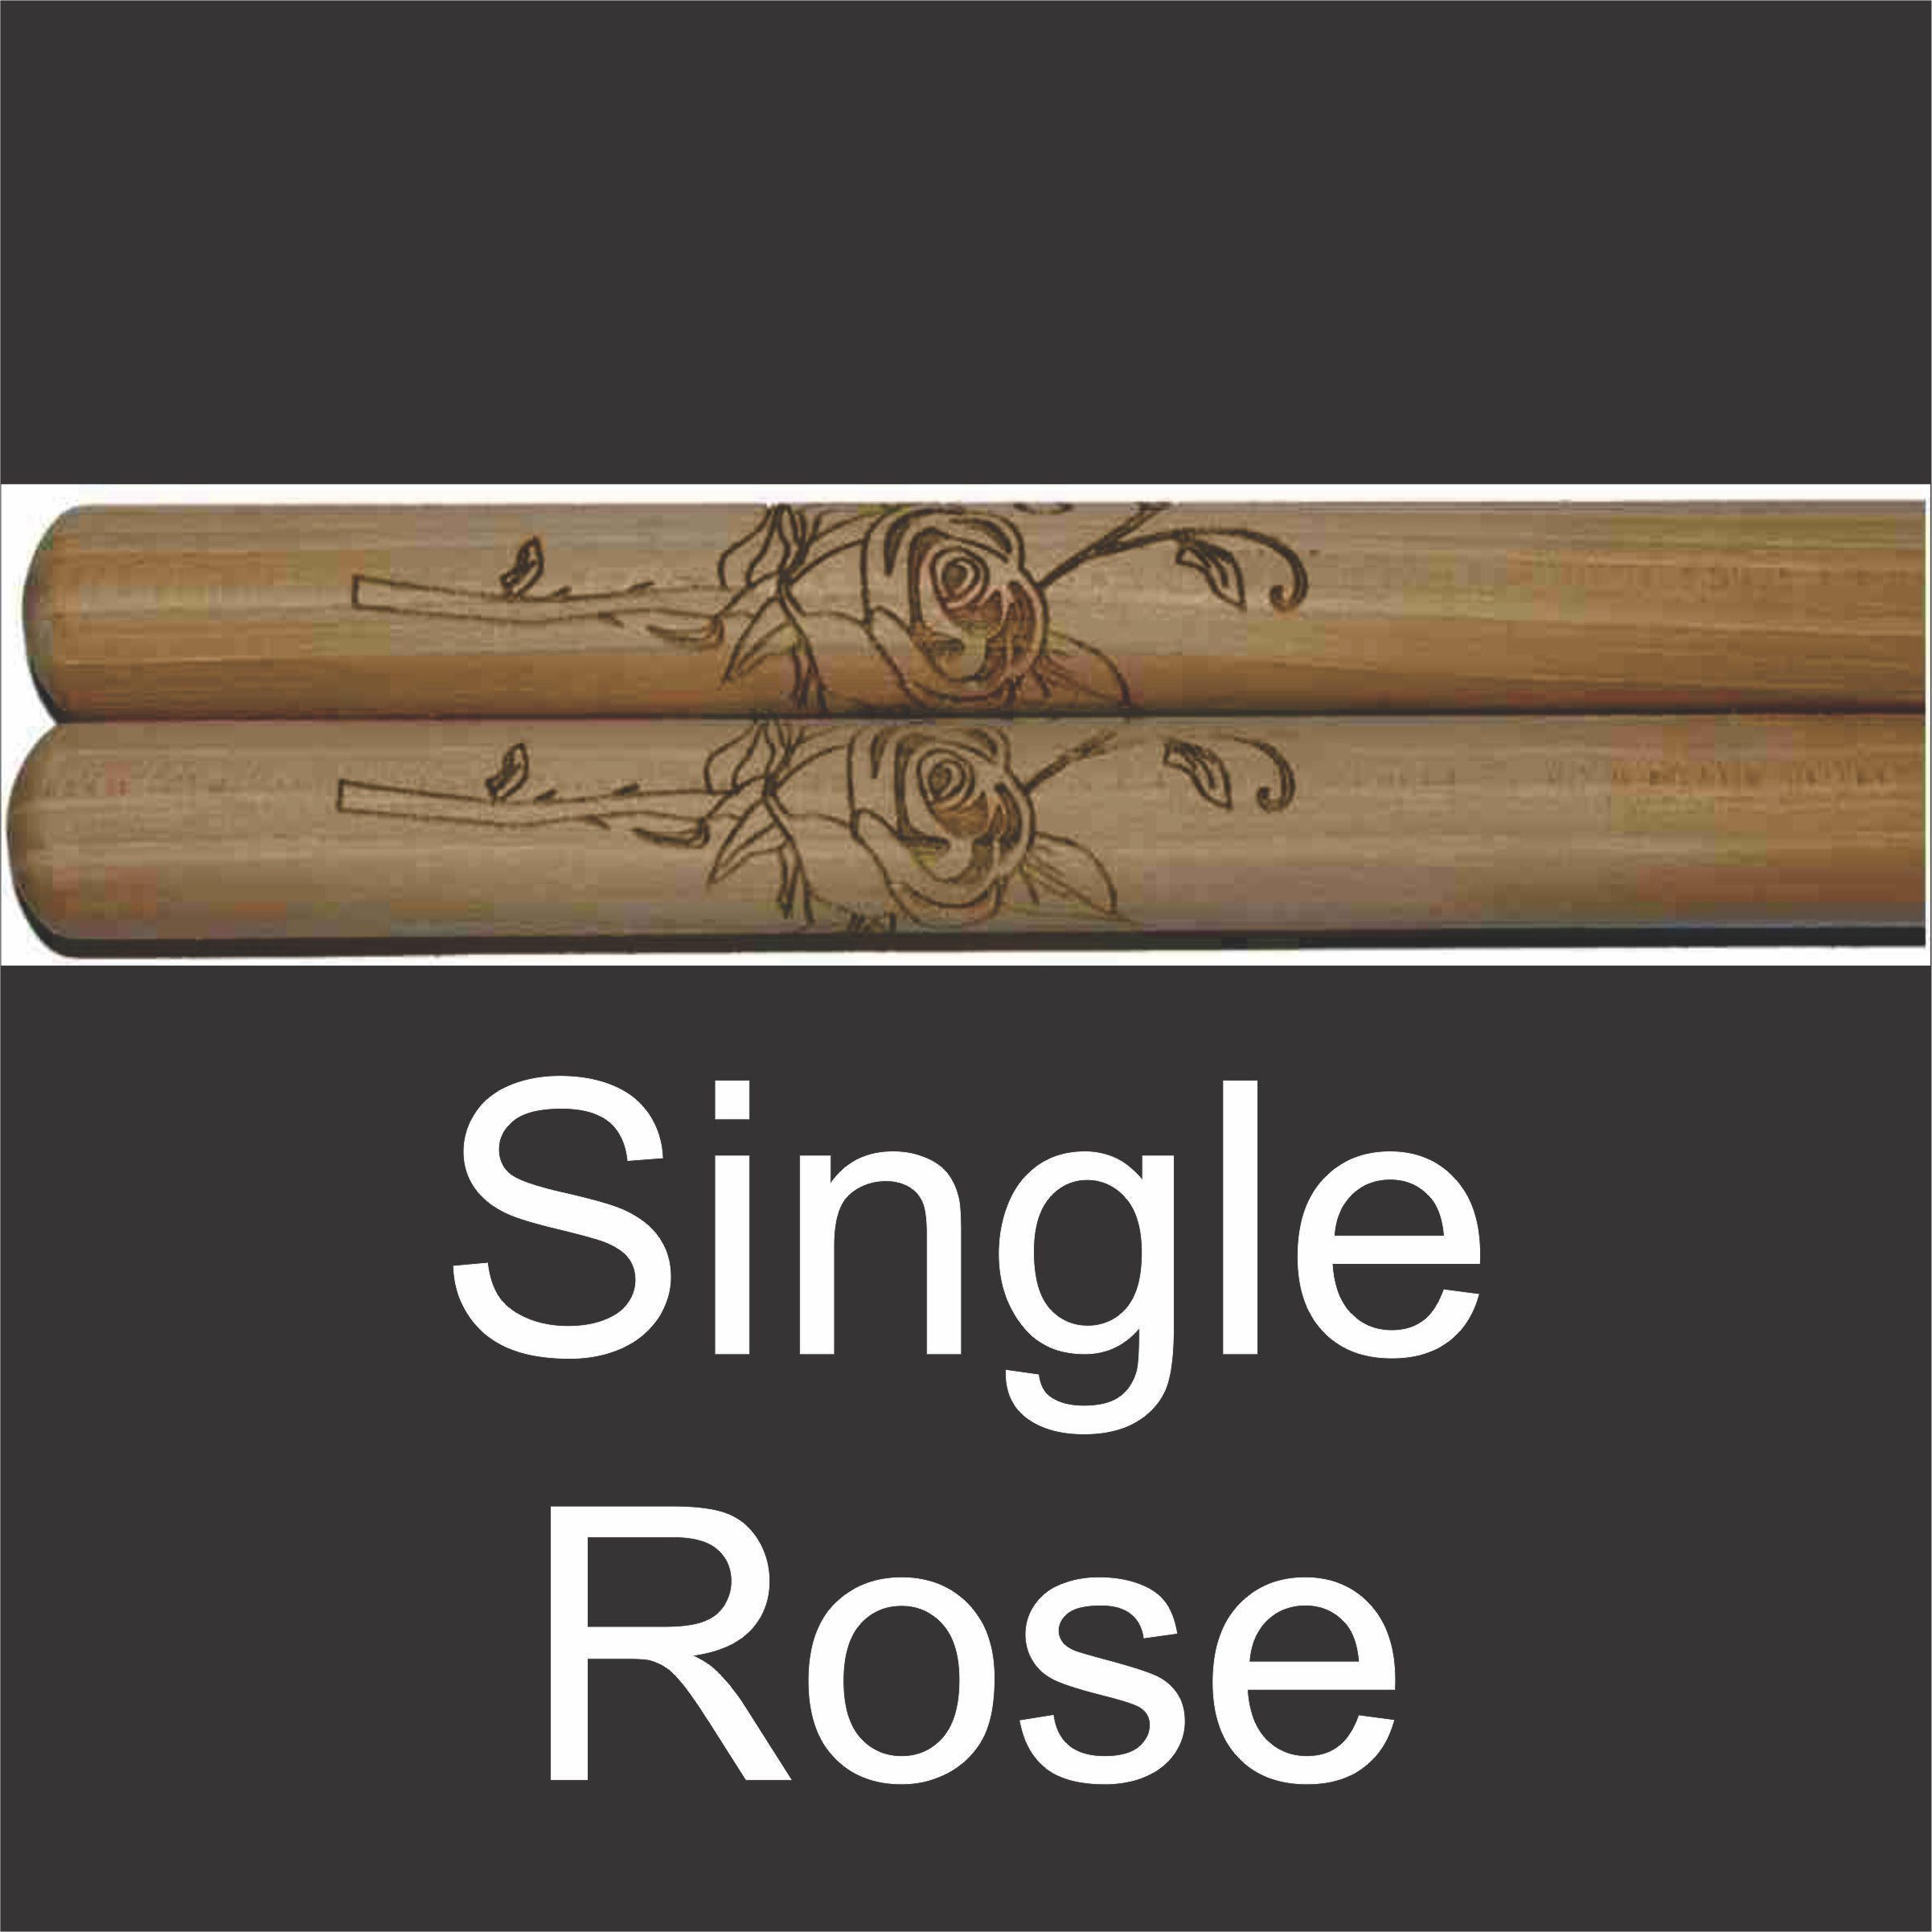 predesigned drumsticks with rose graphic engraving